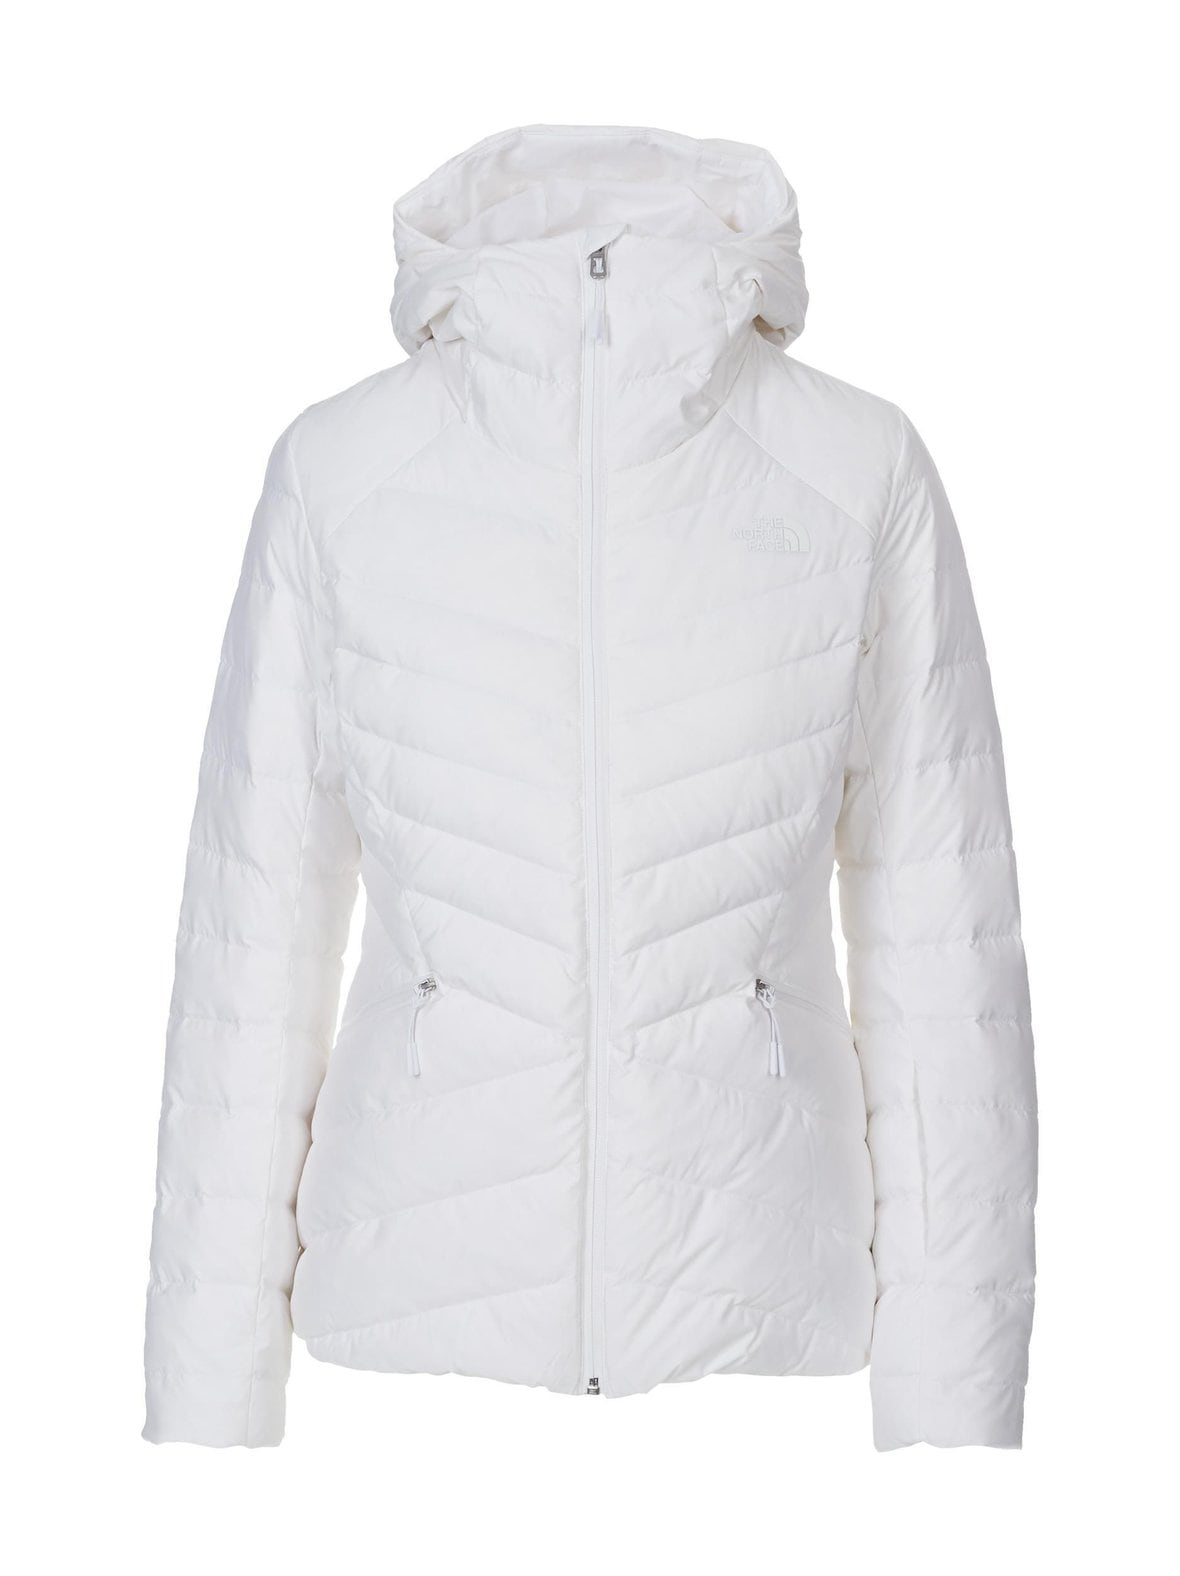 TNF White (valkoinen) The North Face W Moonlight Down Jacket ... 35c51470a9